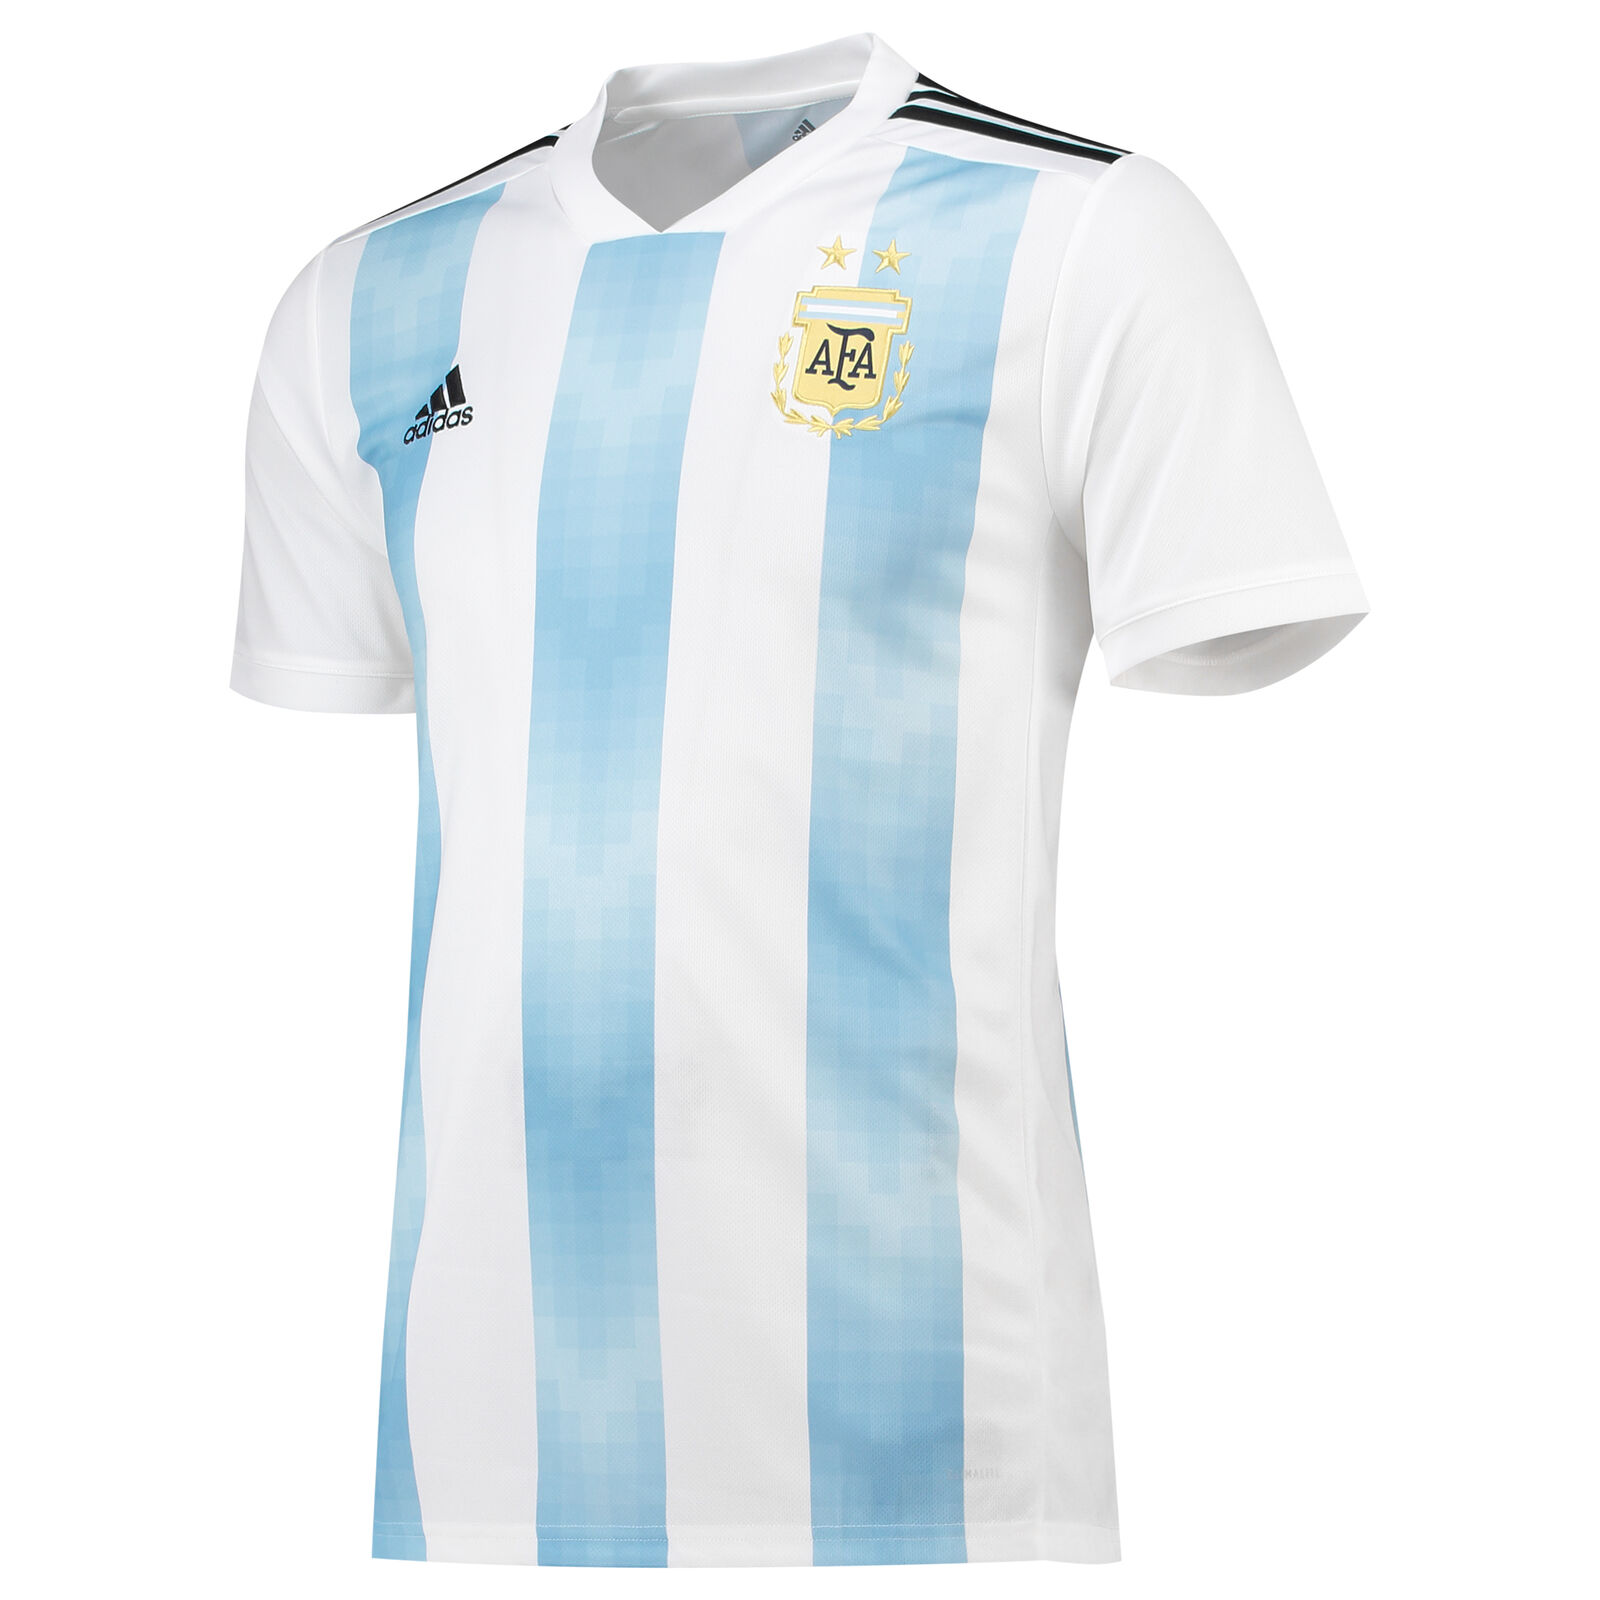 Official silverina Football Home Jersey Shirt Tee Top 2018 Mens adidas